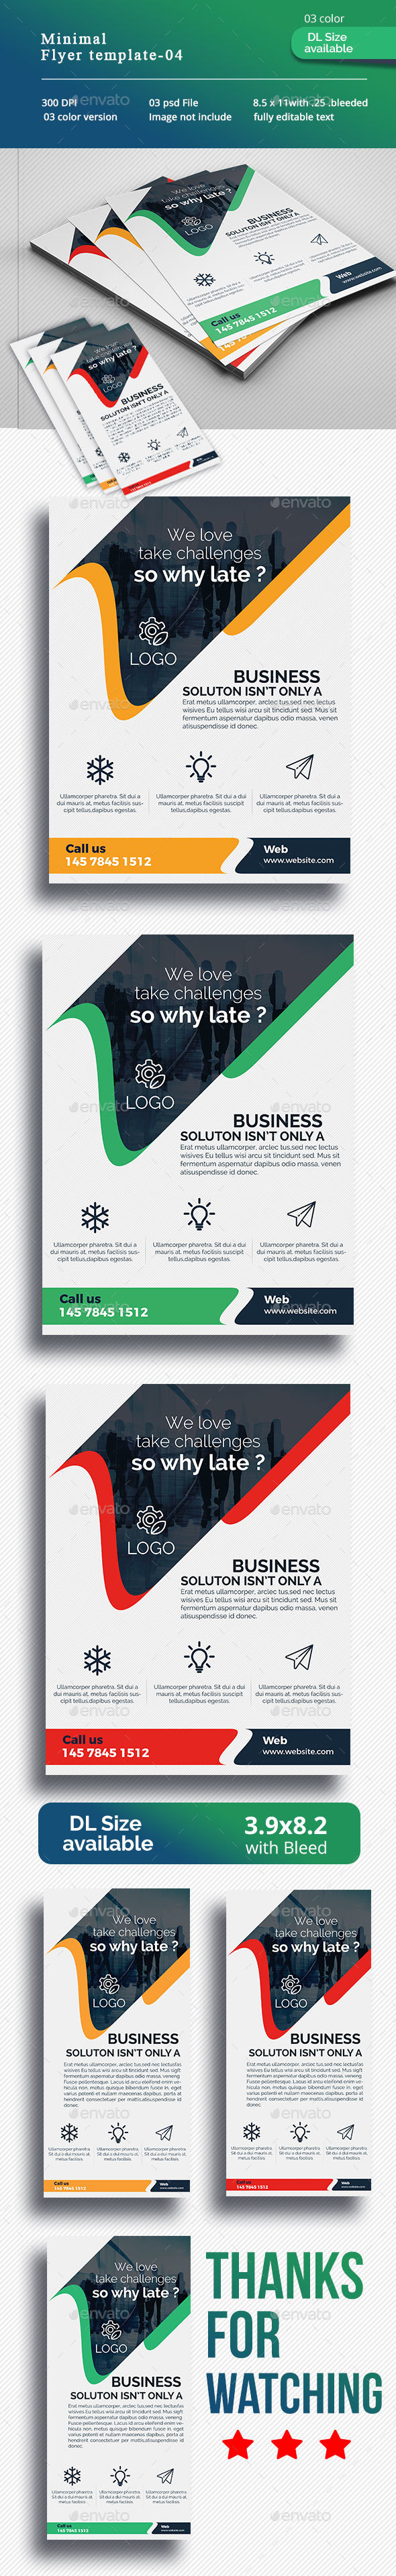 Minimal Flyer-04 - Corporate Flyers